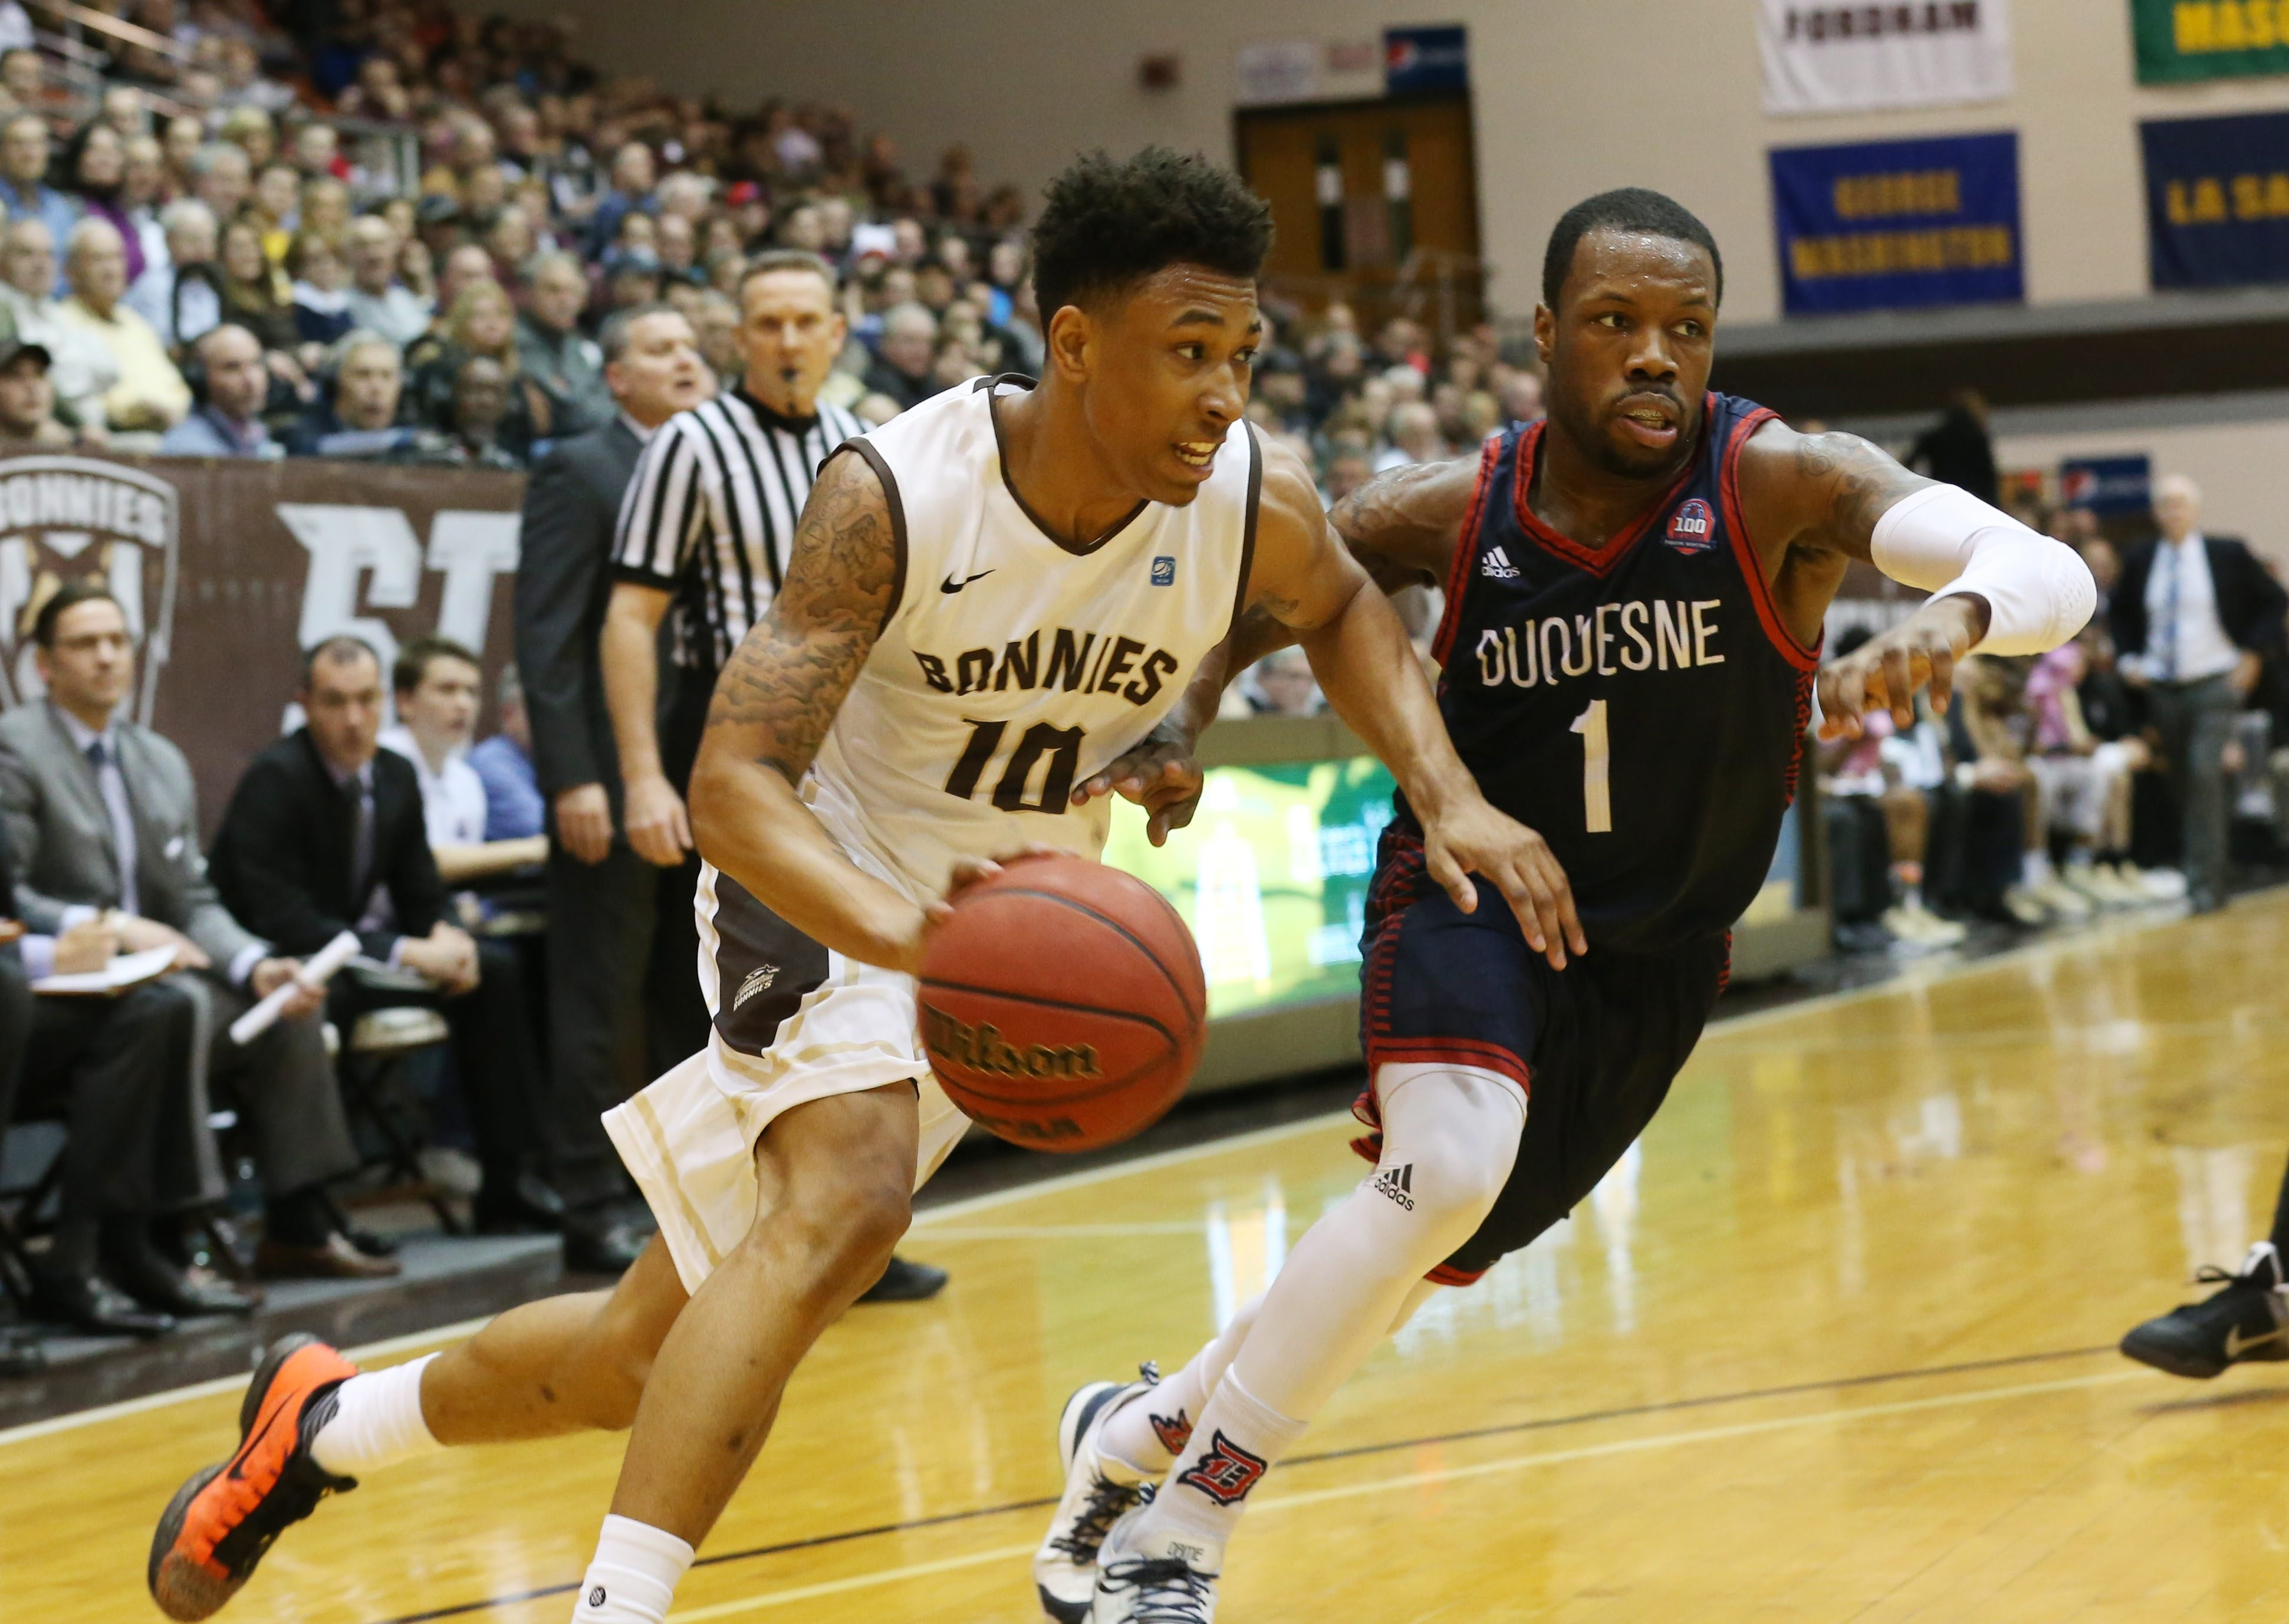 St. Bonaventure's Jaylen Adams drives to the basket while Duquesne's Derrick Lewis gives chase at the Reilly Center on Wednesday evening. The Bonnies posted an 80-76 victory. (Sharon Cantillon/Buffalo News)